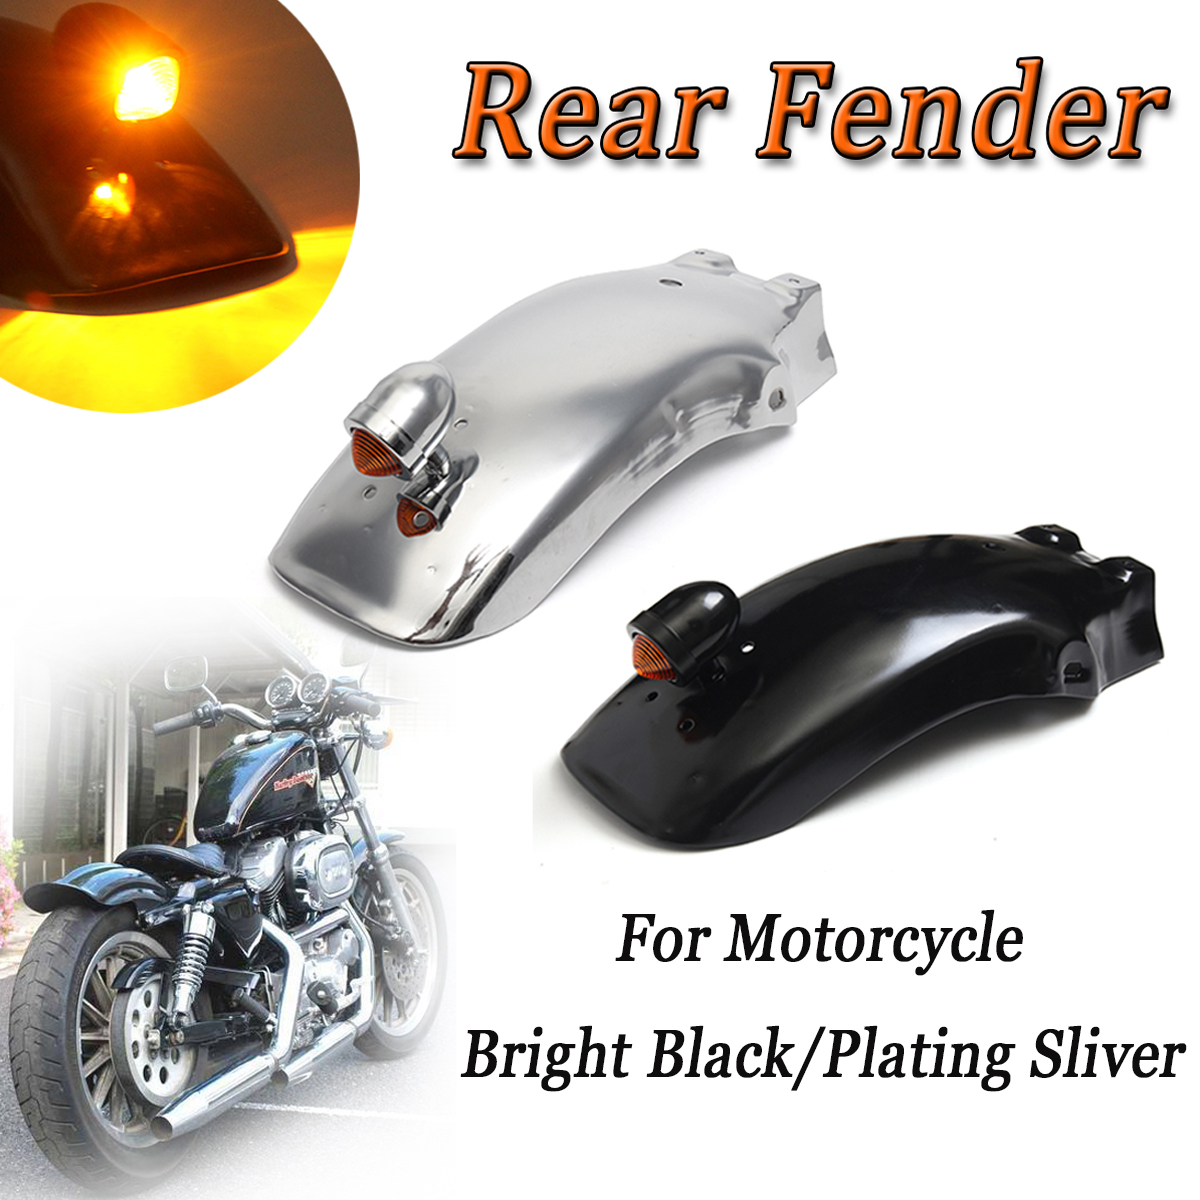 Universal Metal Motorcycle Rear Fender Splash Guard Mud Flap Mudguard Black/Sliver with Taillight